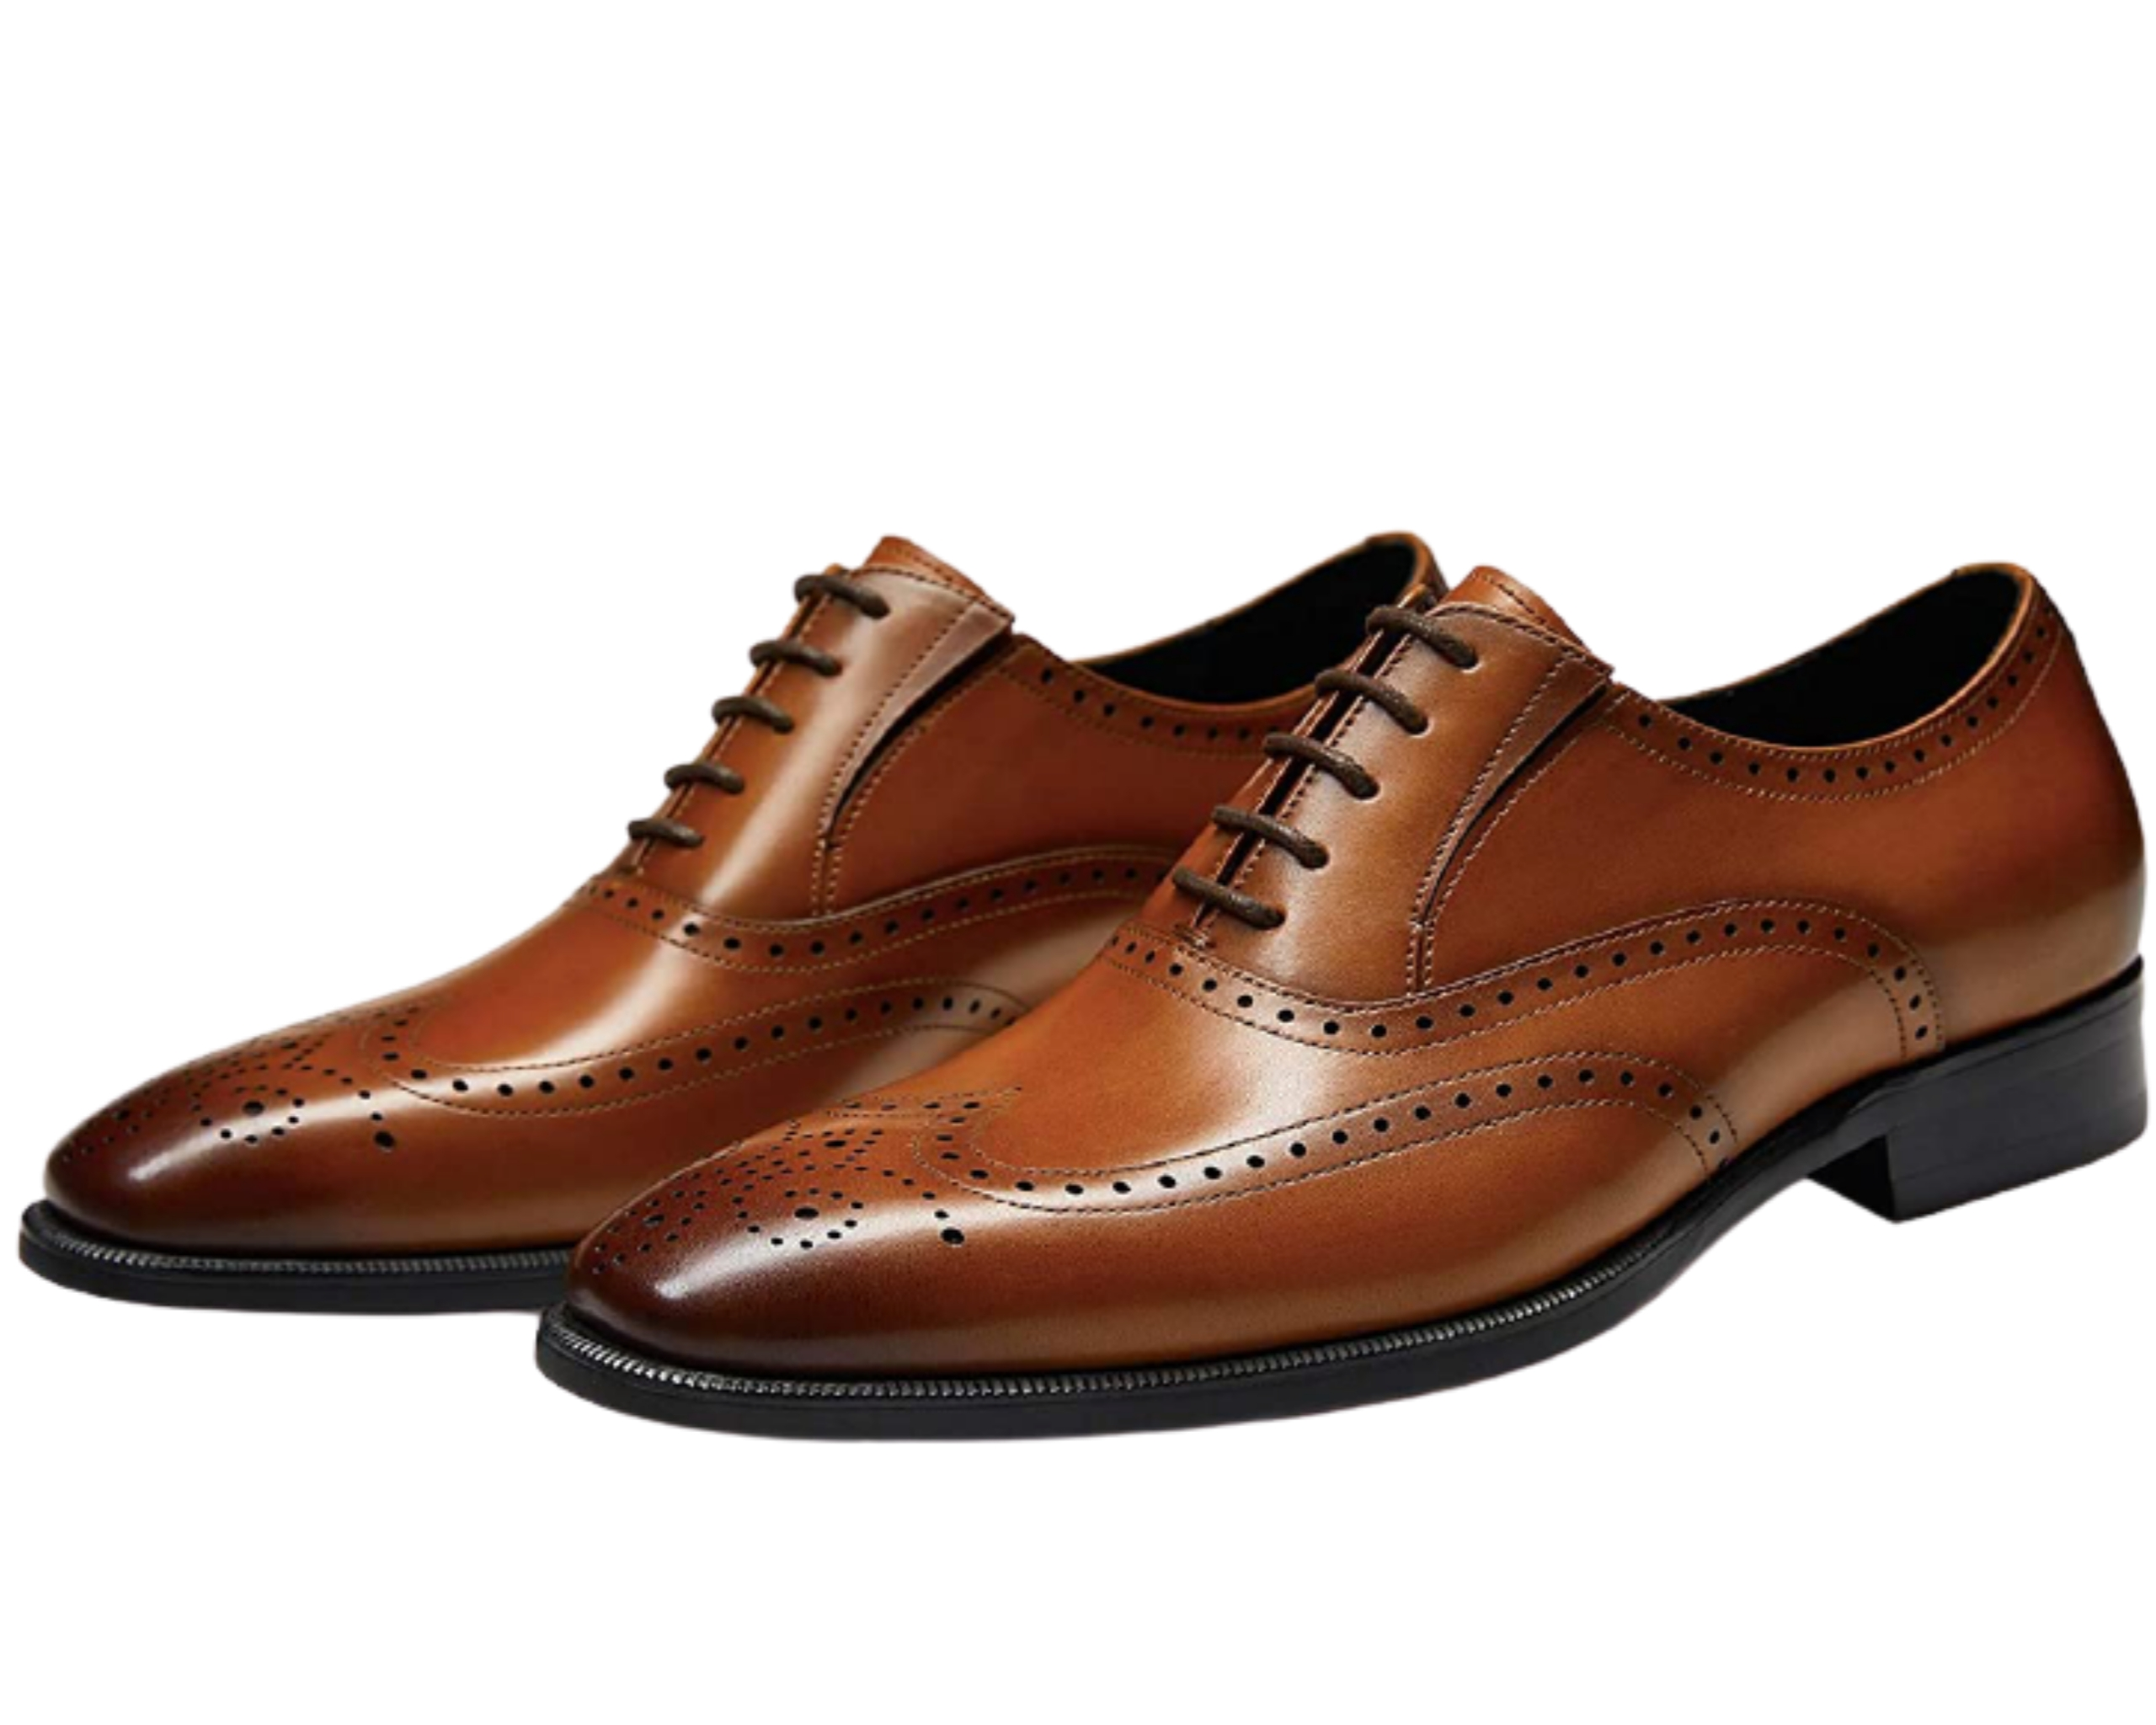 Best brown leather shoes for men